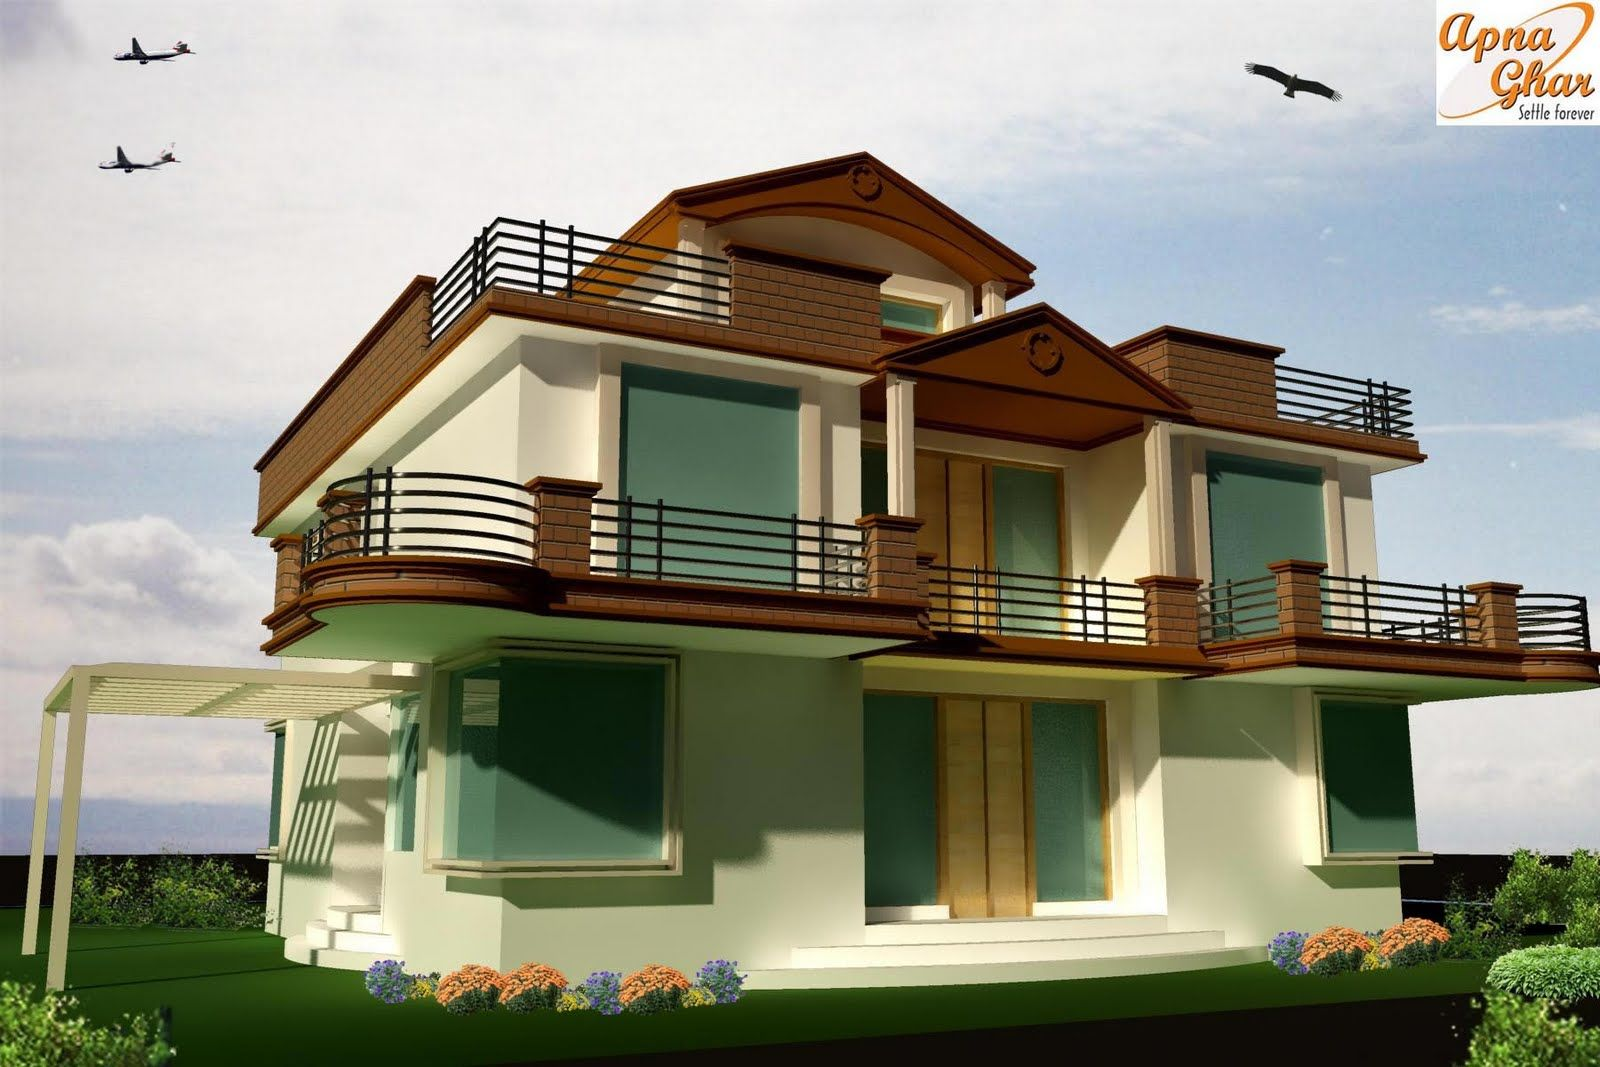 Architectural designs modern architectural house plans for Modern house designs 3d